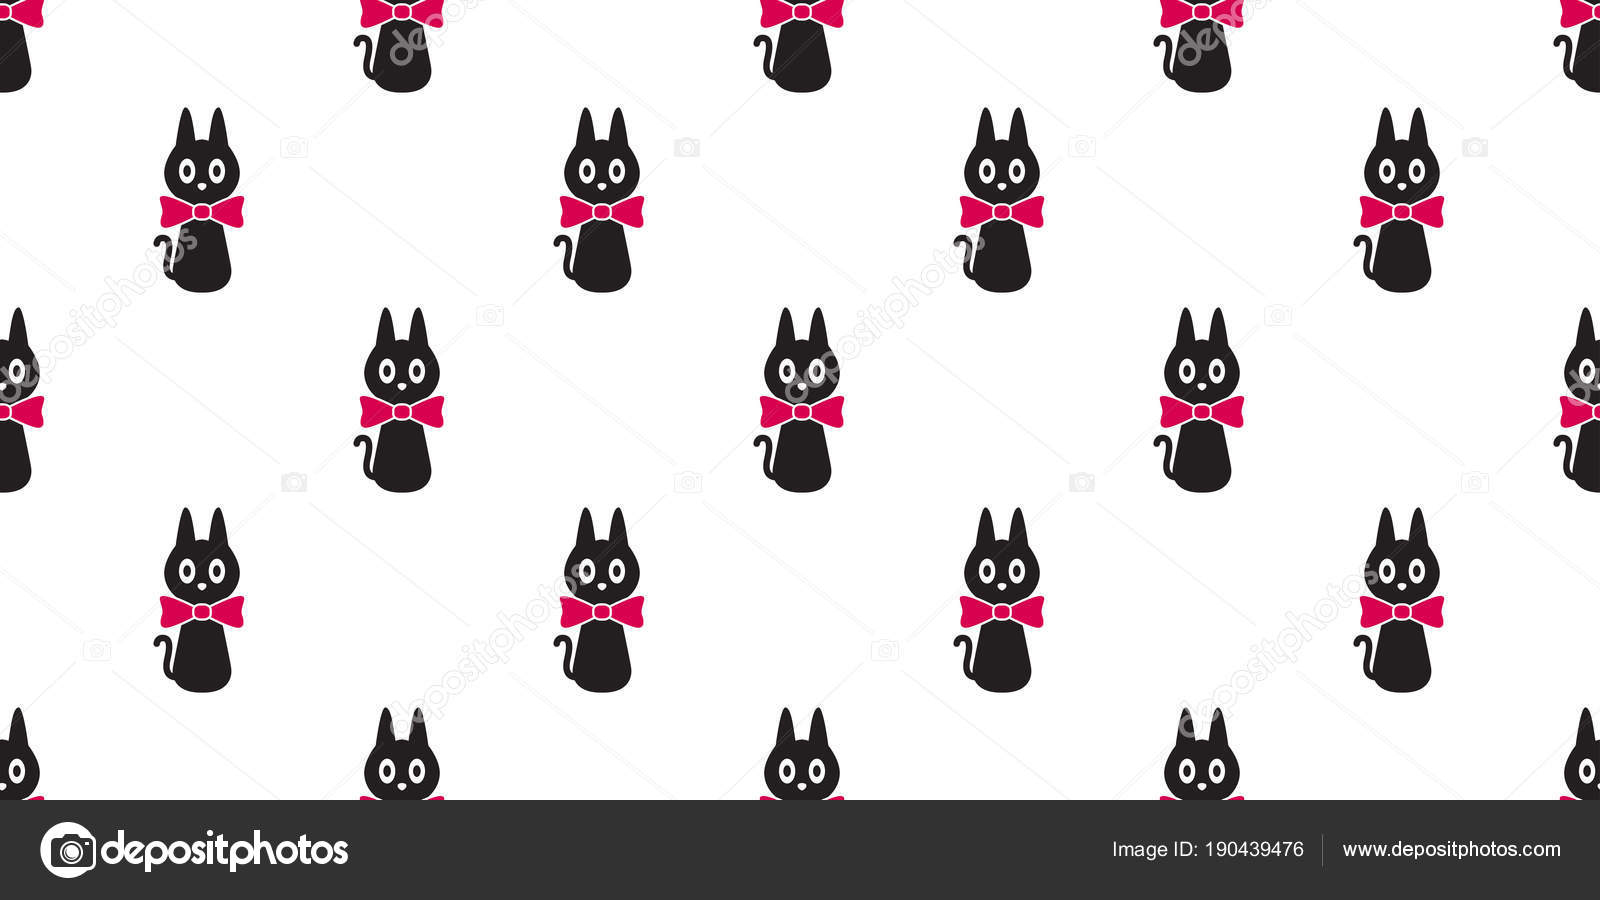 Cat Seamless Pattern Kitten Bow Tie Vector Icon Isolated Wallpaper Background By CNuisin